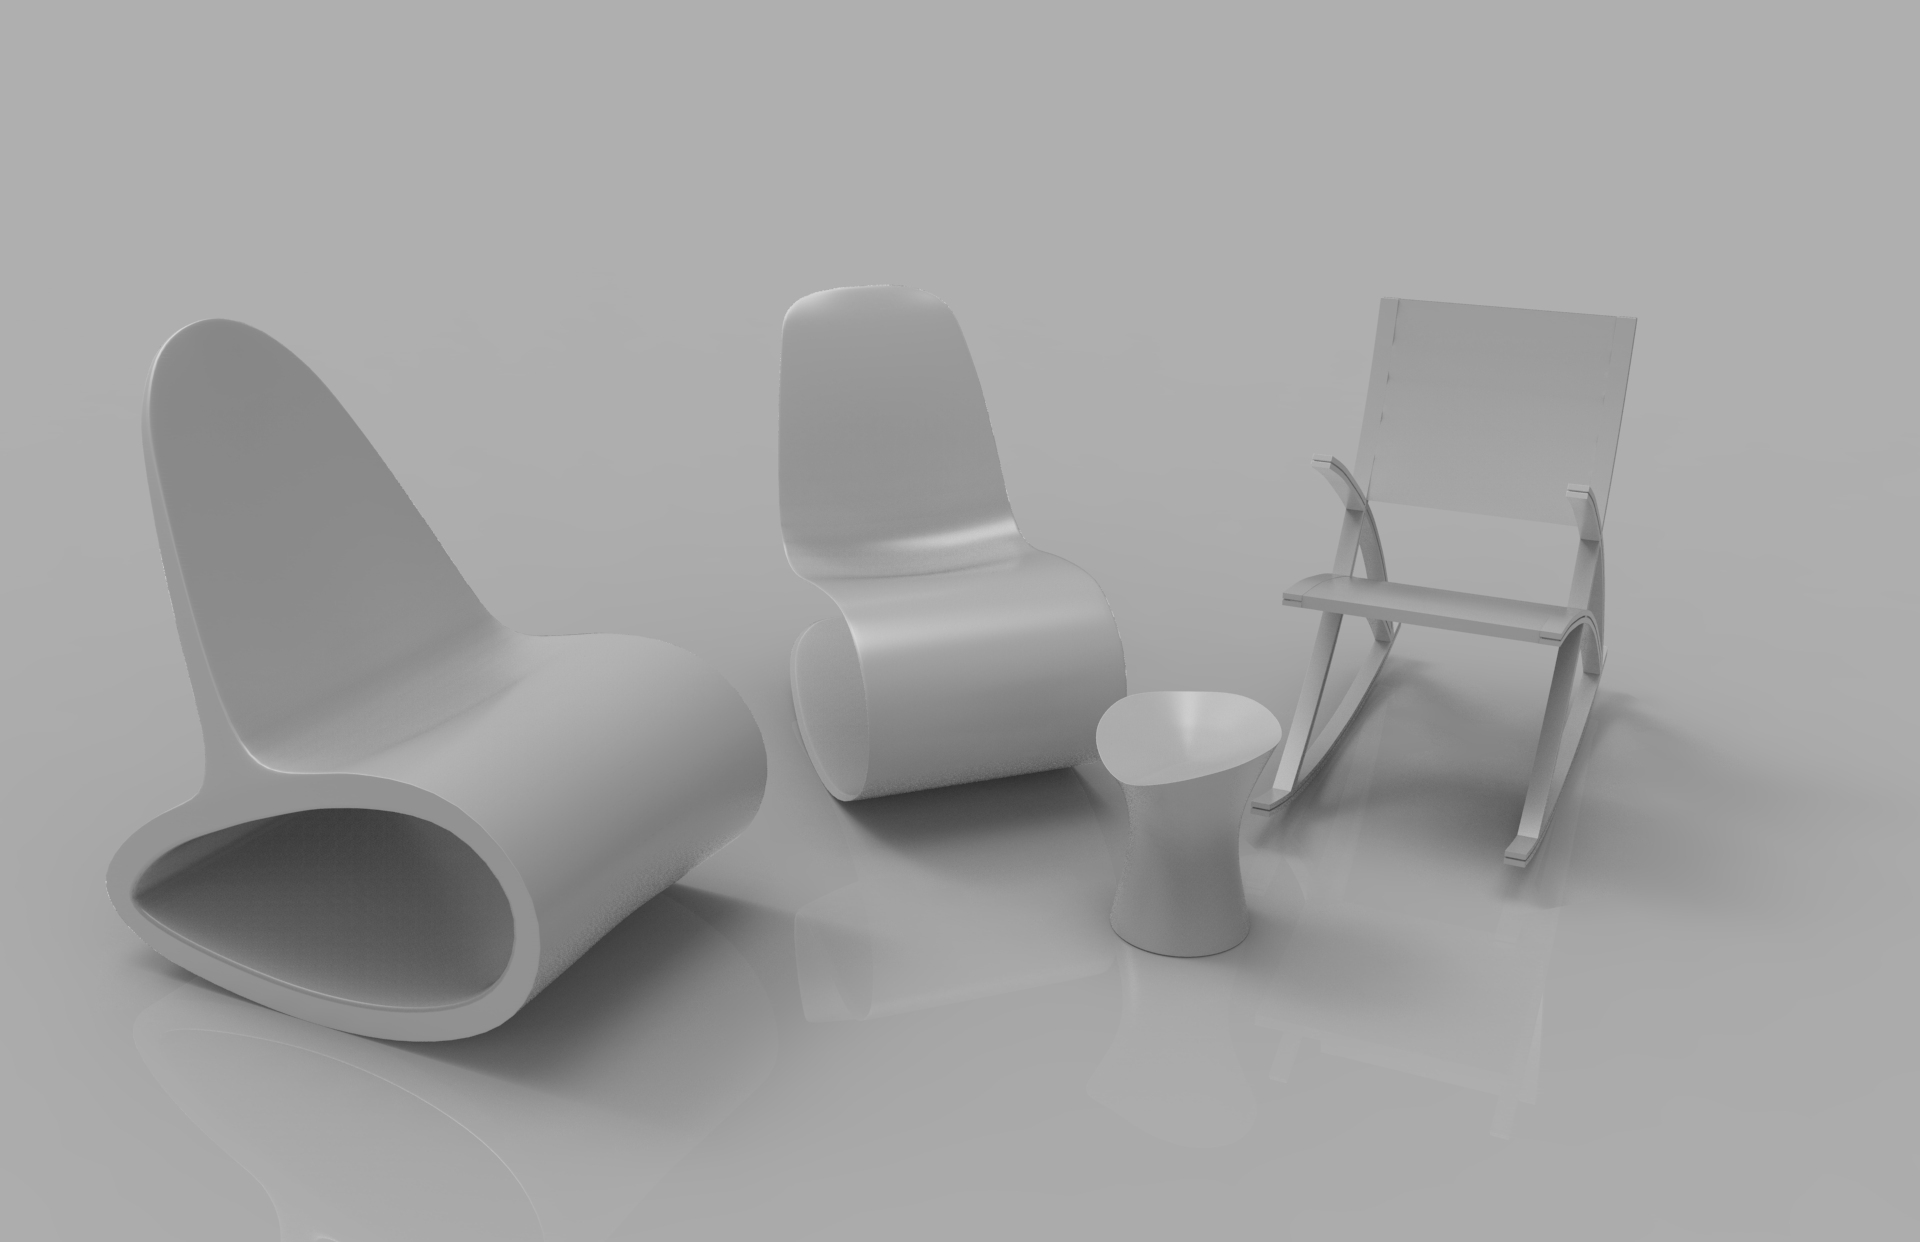 rocking wooden chair collection 3d model max fbx ma mb obj 286166